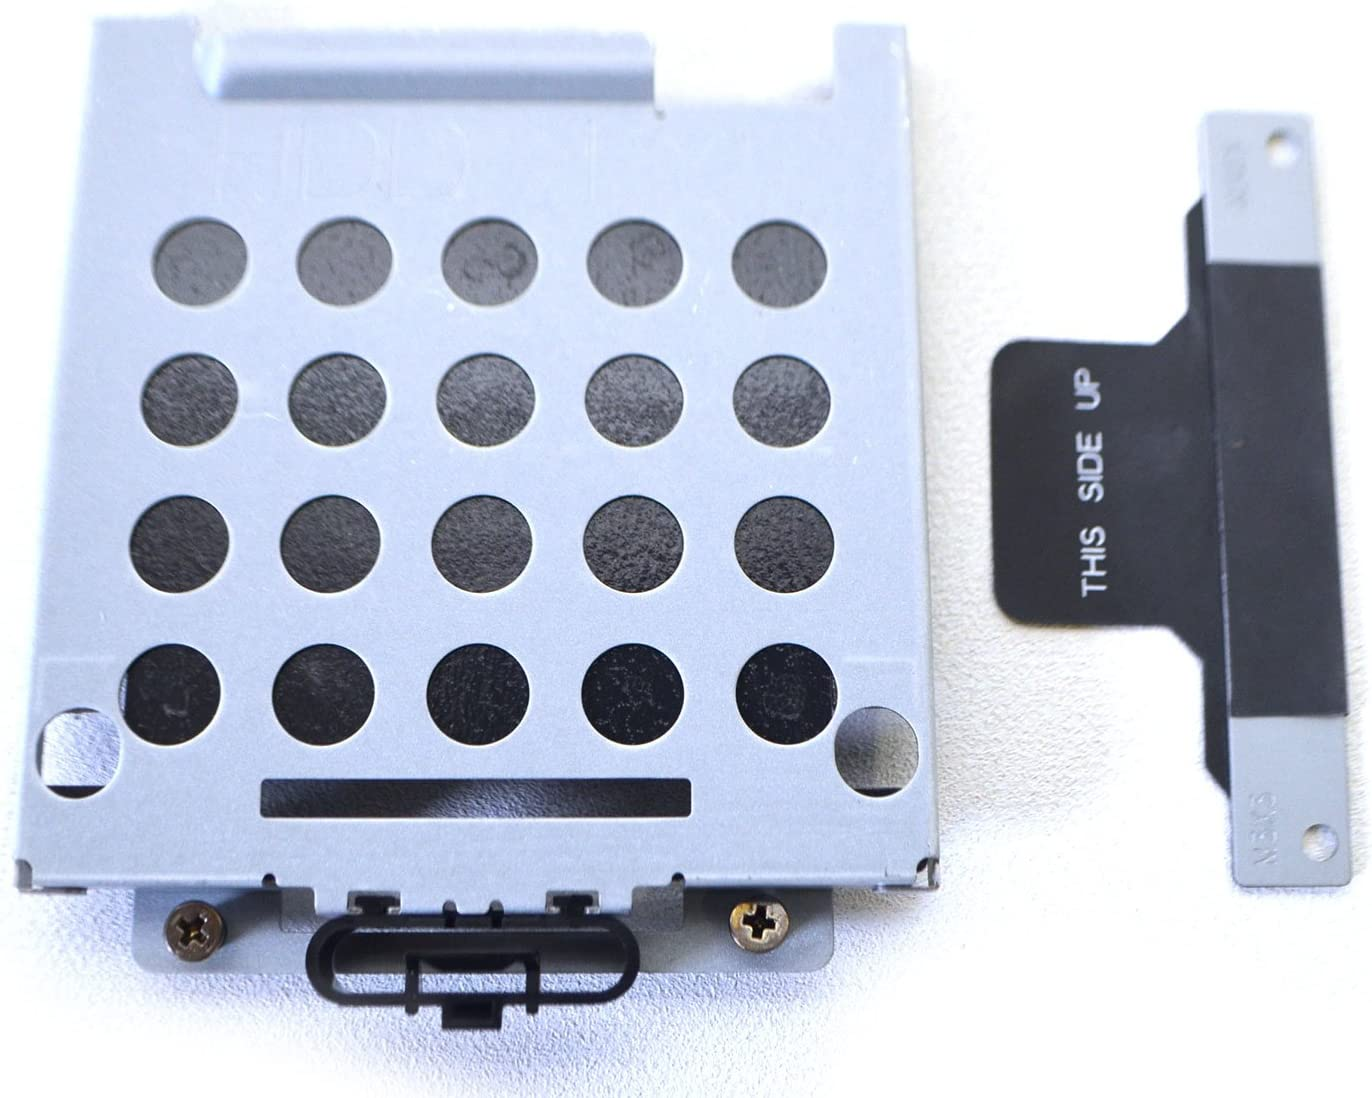 N361F NEW Genuine OEM DELL Precision M6400 M6500 Laptop Notebook Internal Hard Disk Drive HDD Metal Primary Housing Tray Holder Bracket Performance Attachment Caddy 38XM1HBWI00